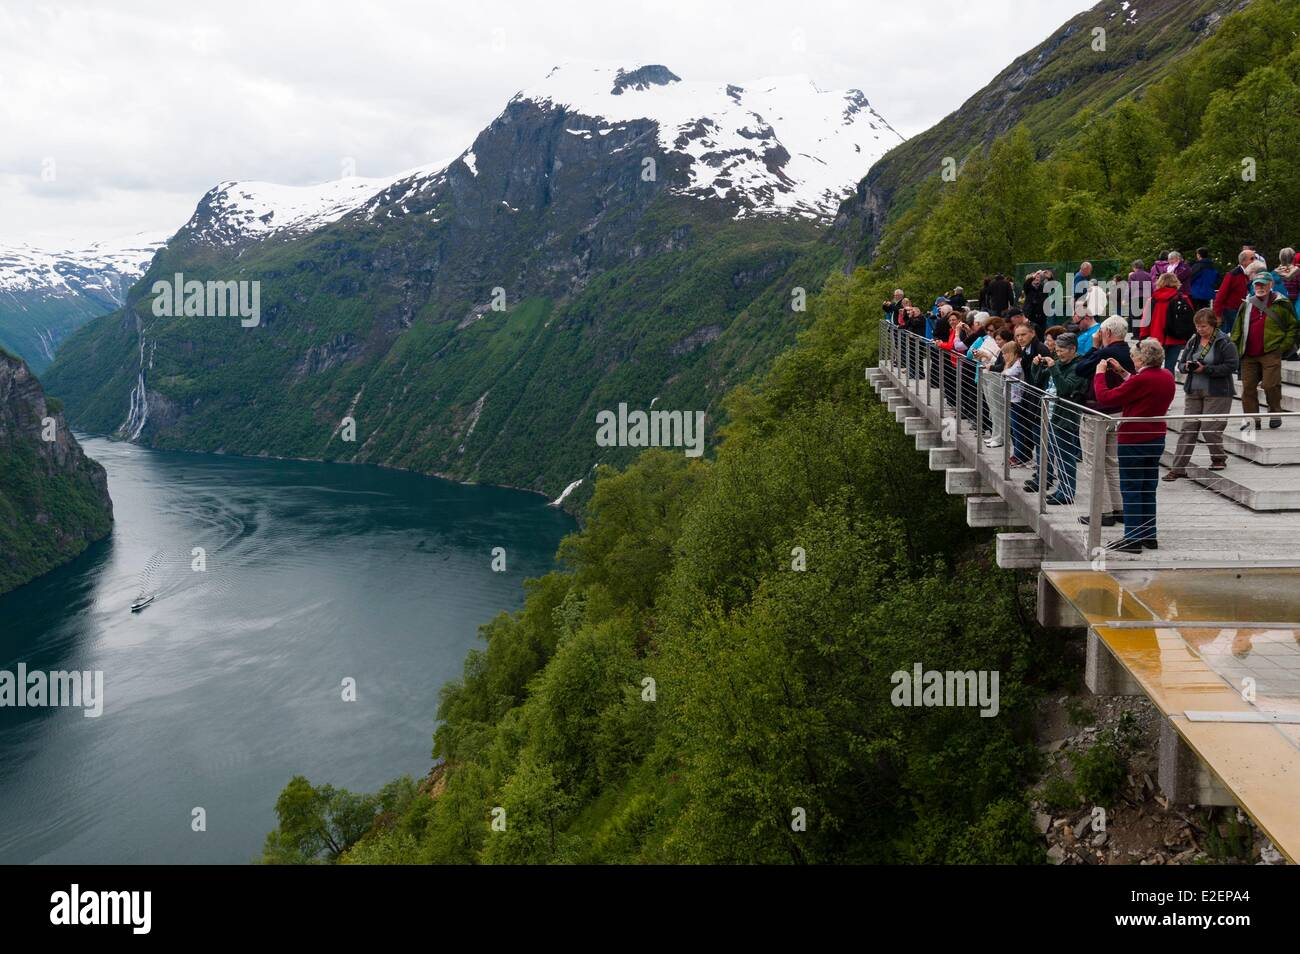 Norway, More og Romsdal County, tourist at Geirangerfjord - Stock Image